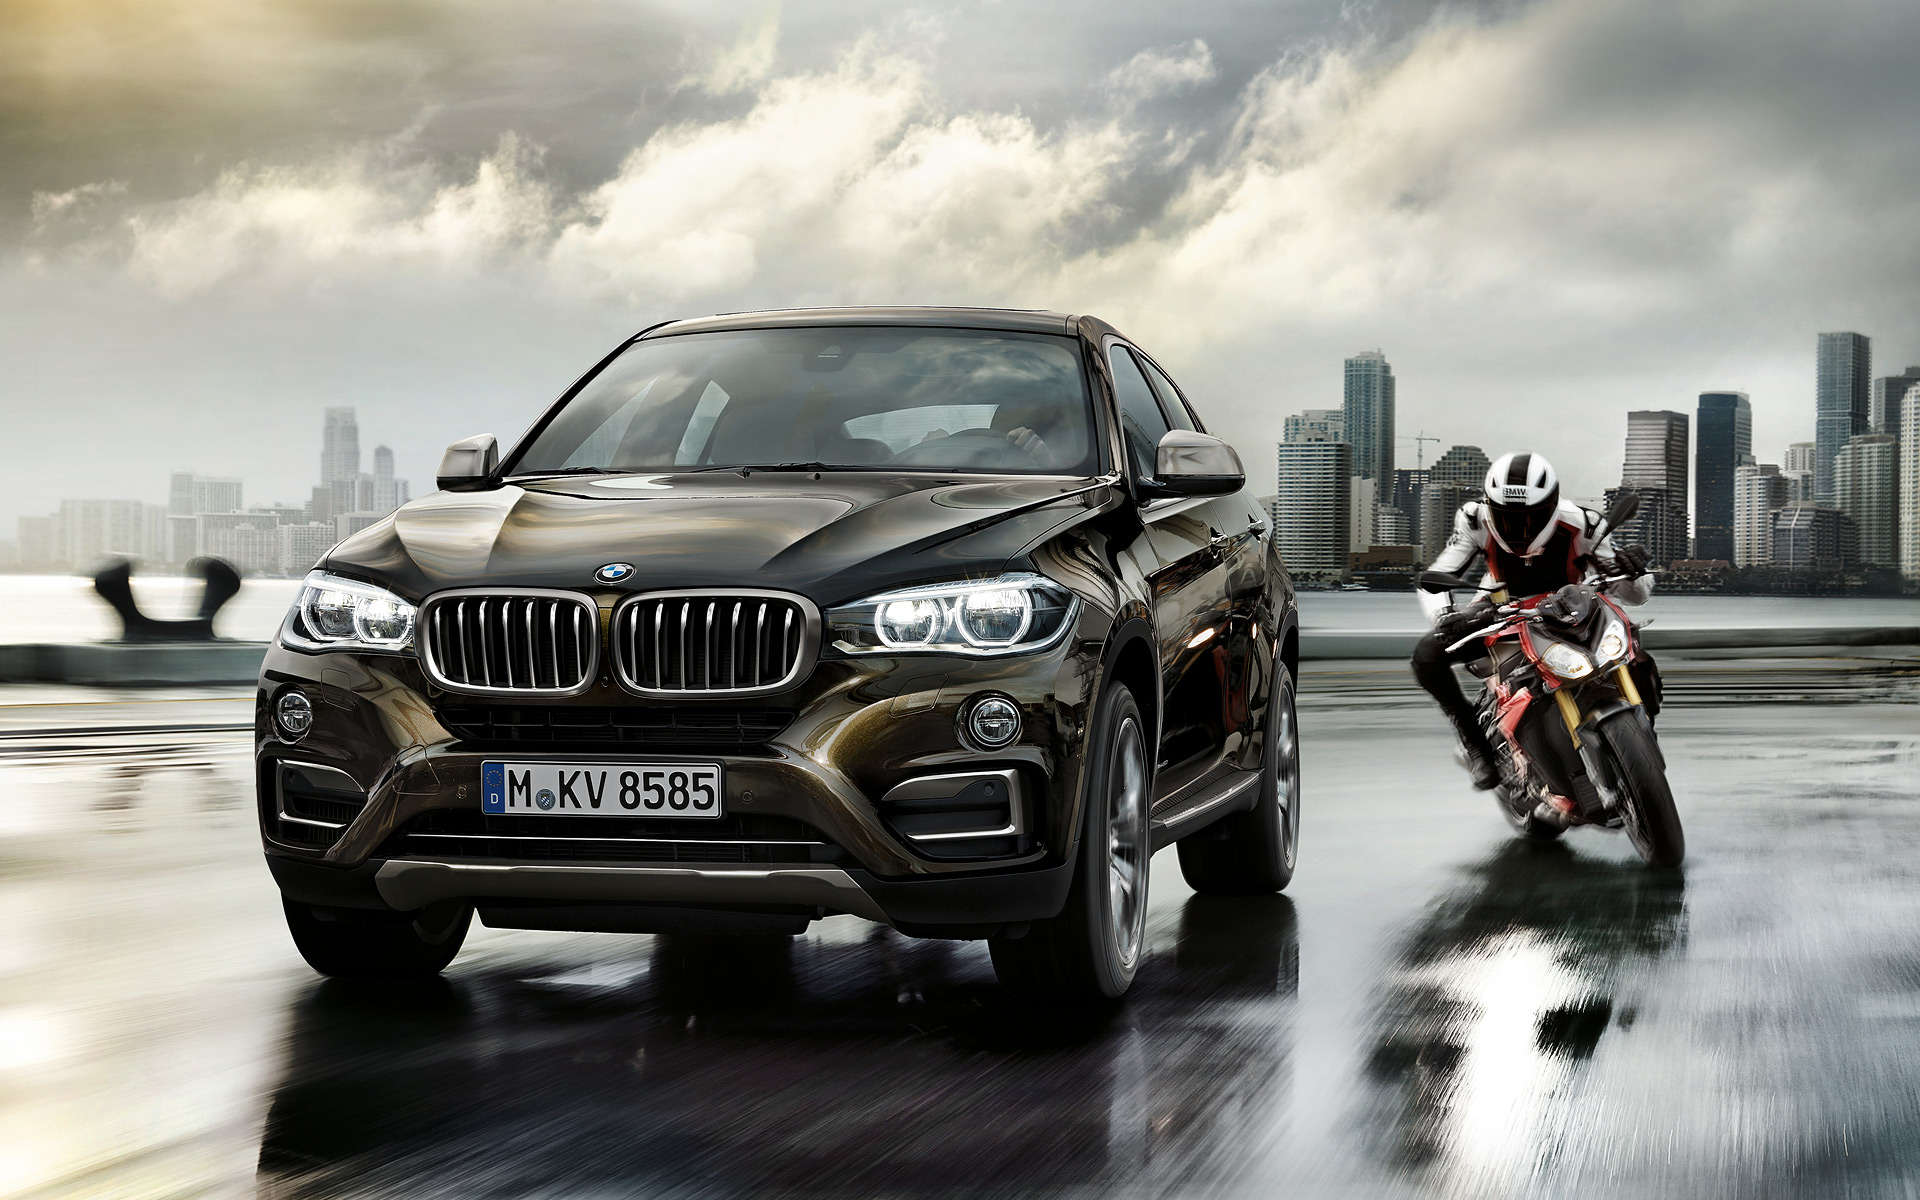 1920x1200 - BMW X6 Wallpapers 1